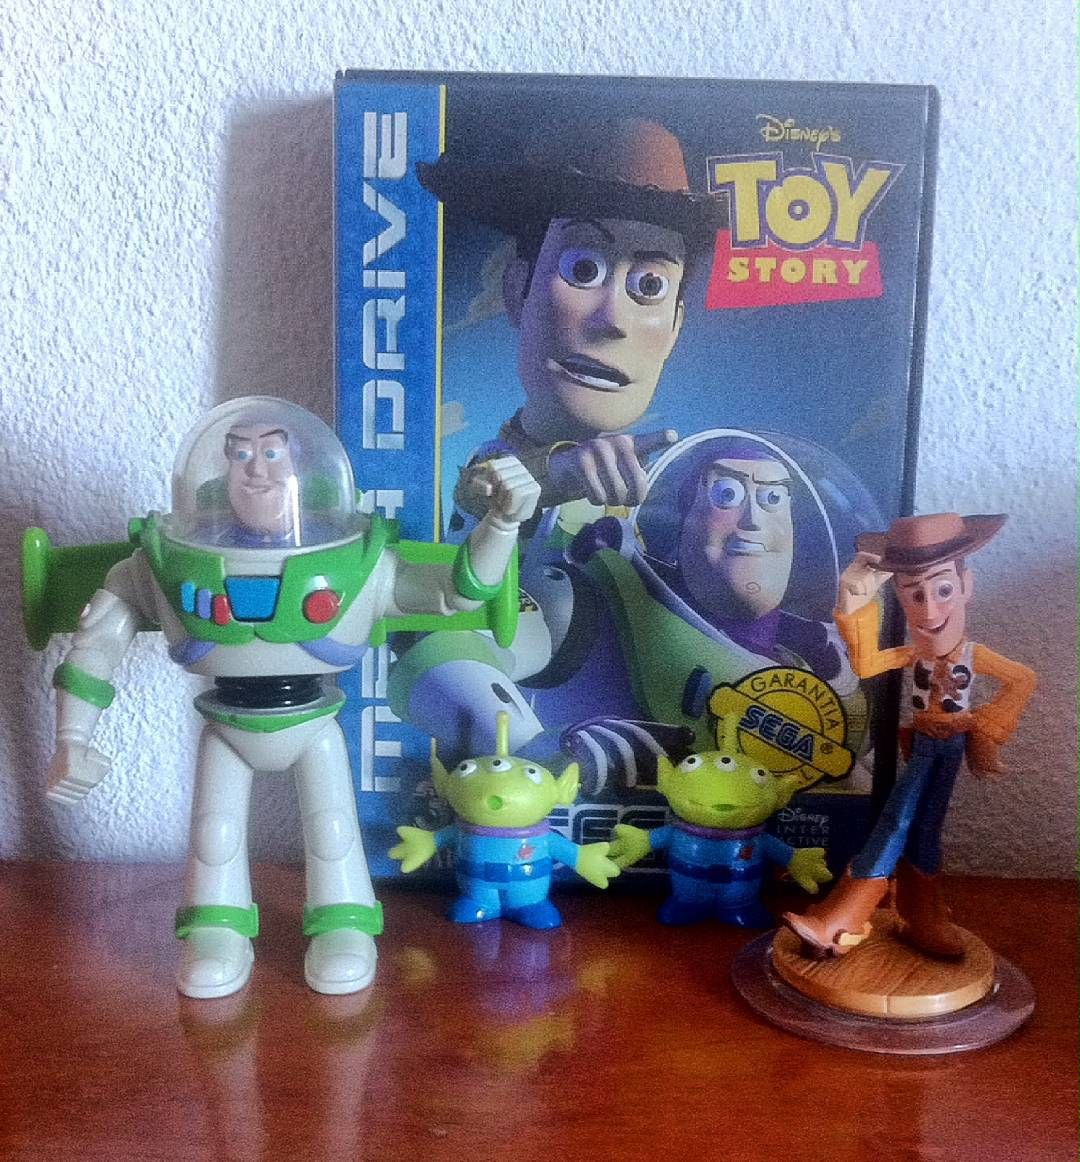 On instagram by l.oliveira83 #retrogames #microhobbit (o) http://ift.tt/1RRFL2P infinity and beyond ! #toystory #segagenesis #segamegadrive #megadrive #sega #disney #pixar #woody #buzzlightyear #retrogamers  #retrogaming #retrogamehunting #retrocollection #videogameart #videogames #videogamecollection #videogameaddict #videogamers #games #gamecollecting #gamecollector #gamer